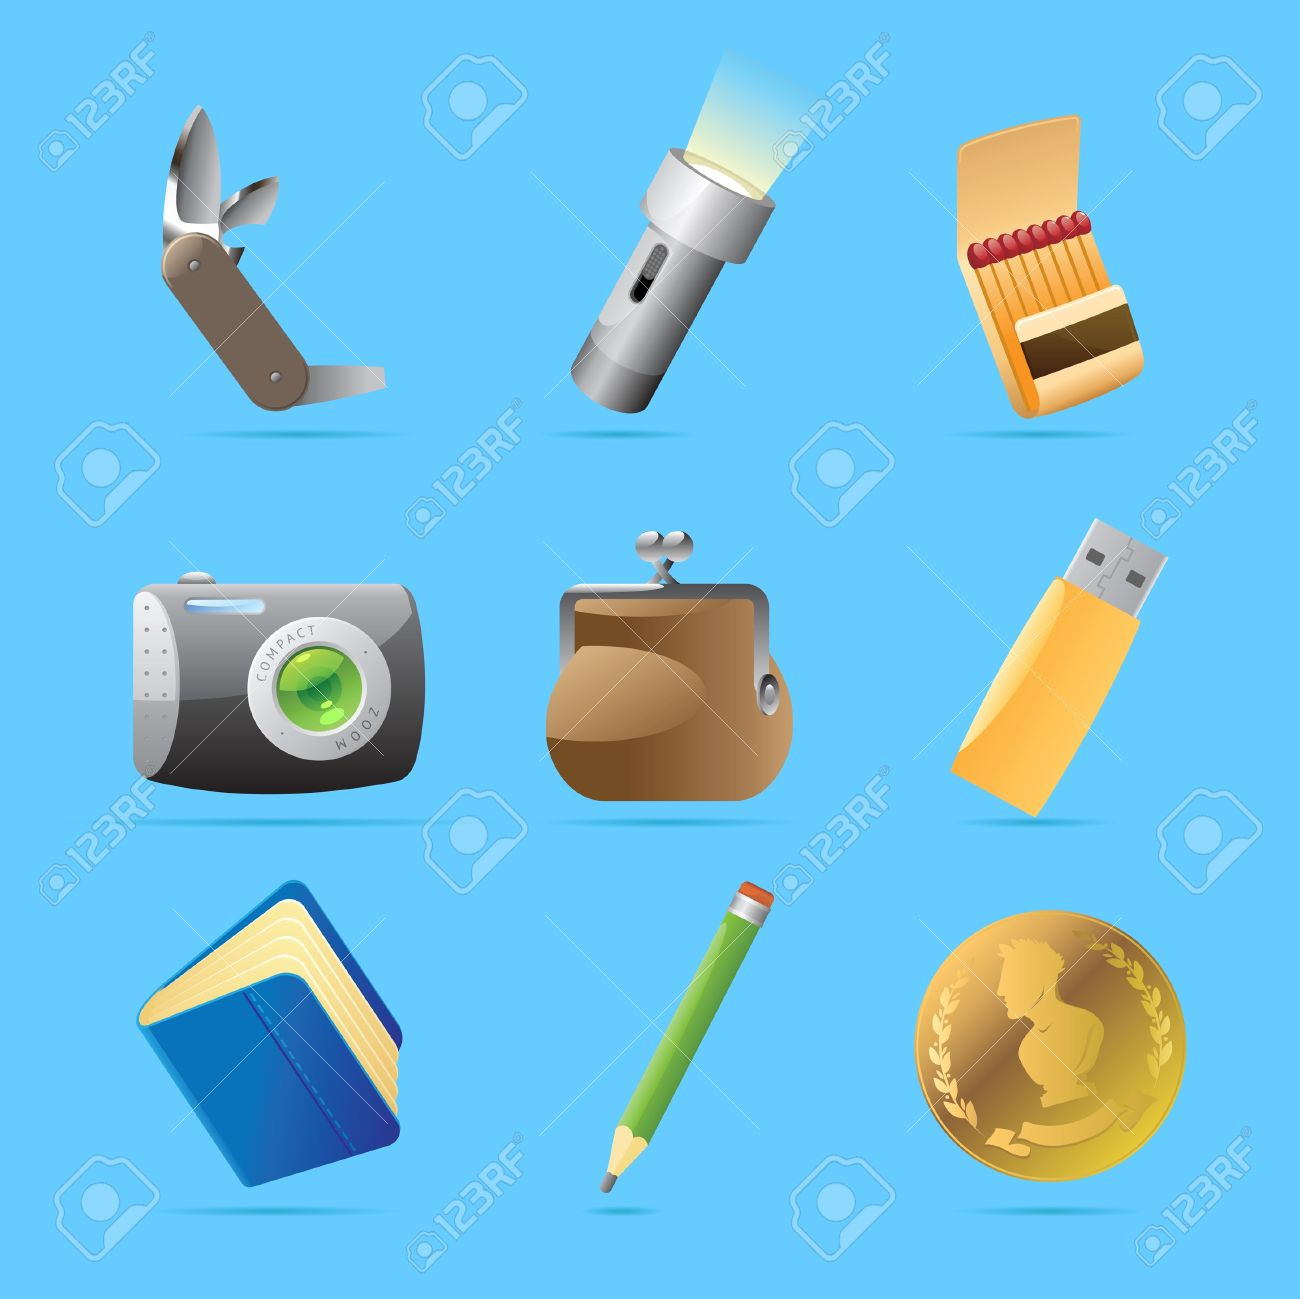 Icons For Personal Belongings Vector Illustration Royalty Free.